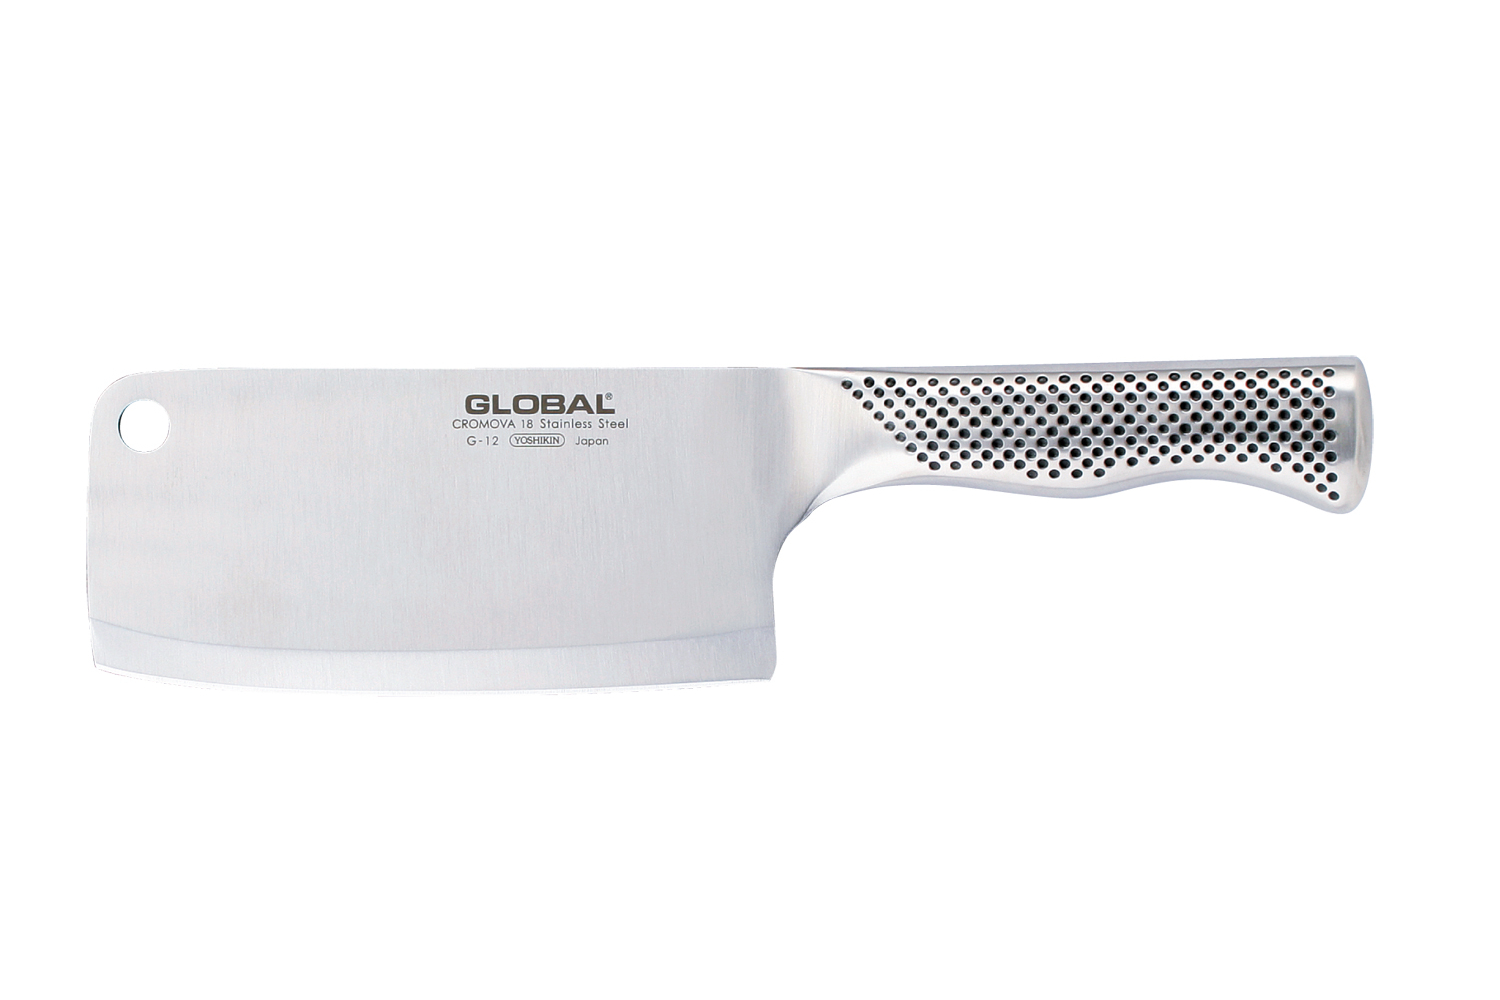 Global 6 1/2 inch Meat Cleaver